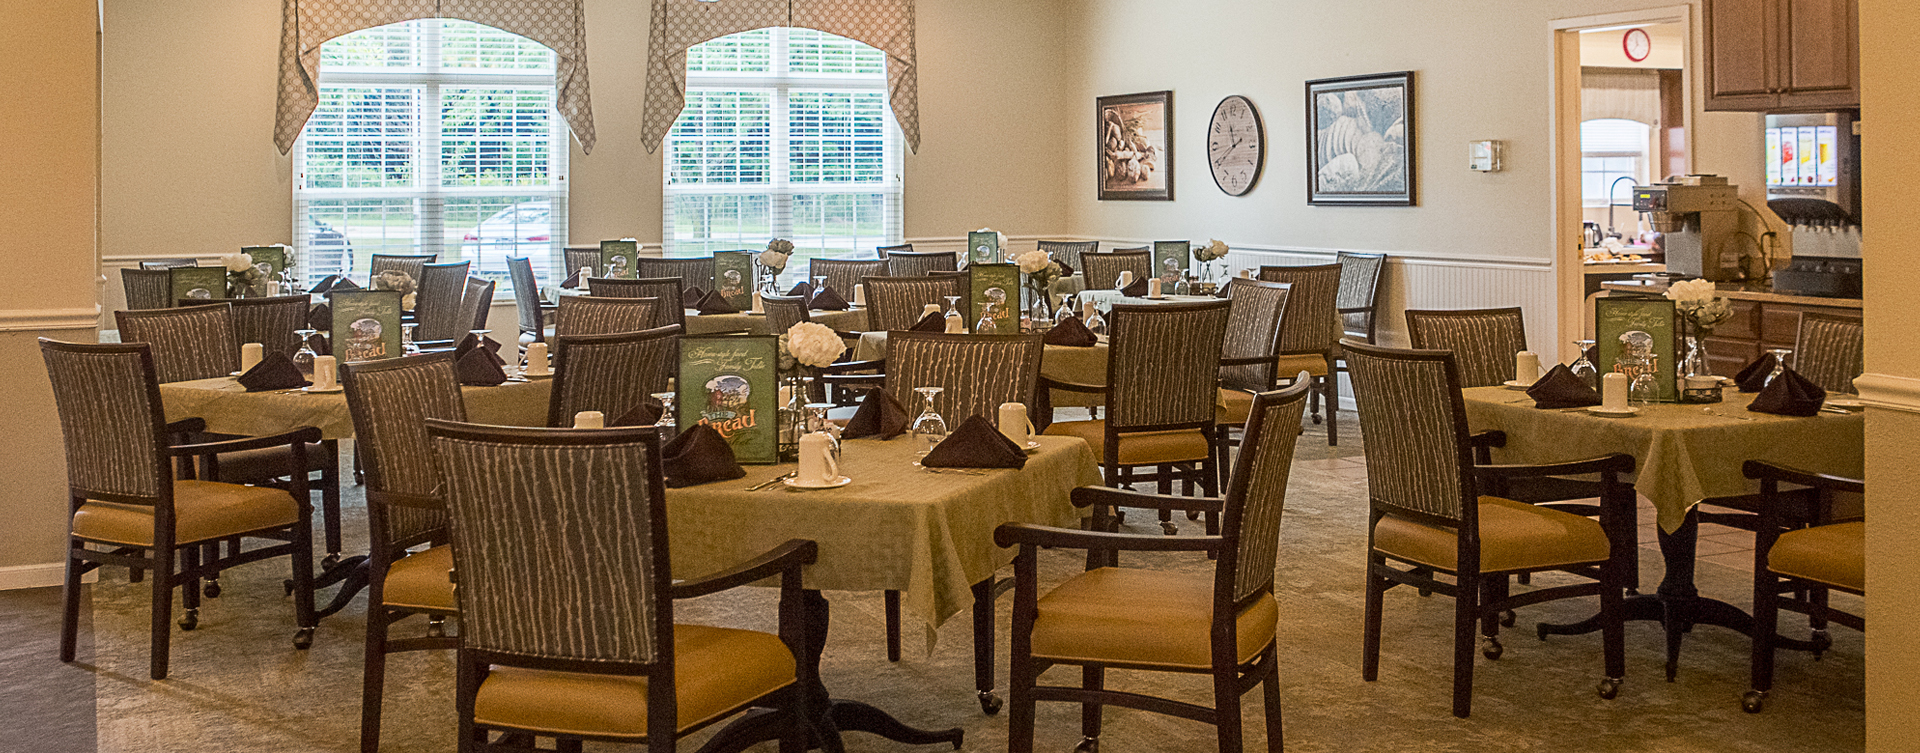 Enjoy homestyle food with made-from-scratch recipes in our dining room at Bickford of Iowa City